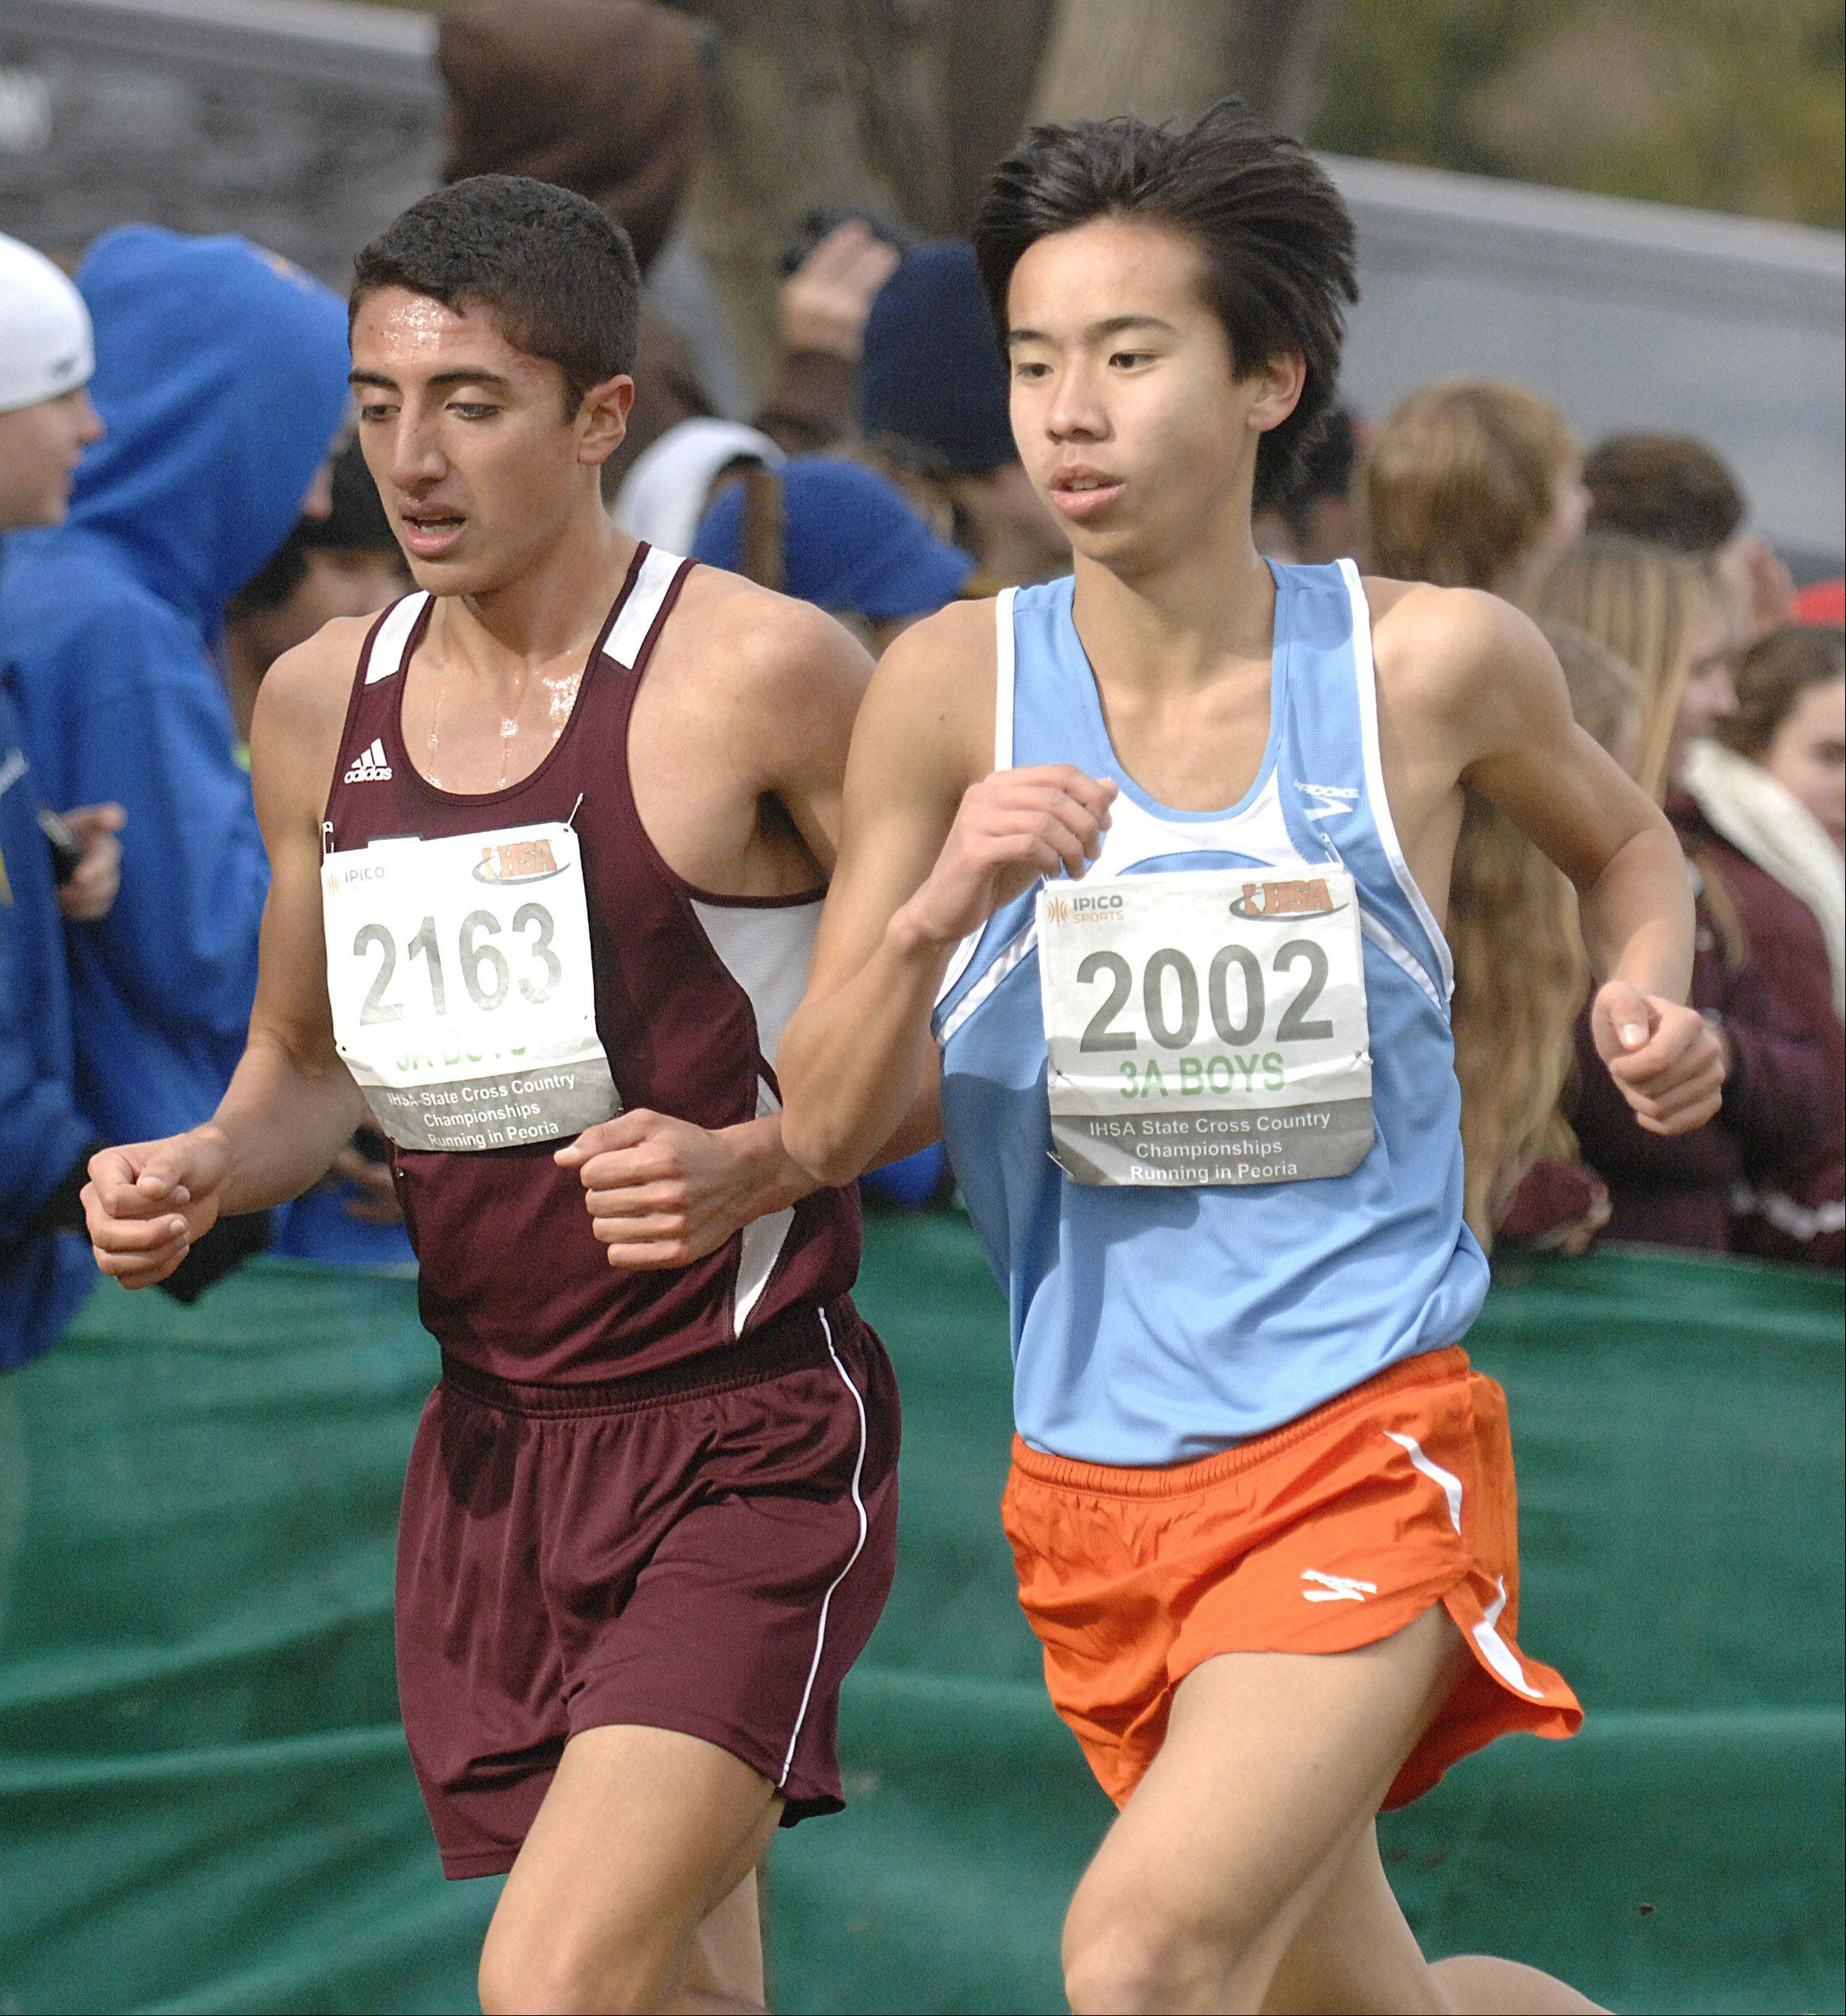 Berwyn-Cicero's Omero Montalvo and Naperville North's Jimmy Qiao in the state cross country 3A final in Peoria on Saturday, November 3.